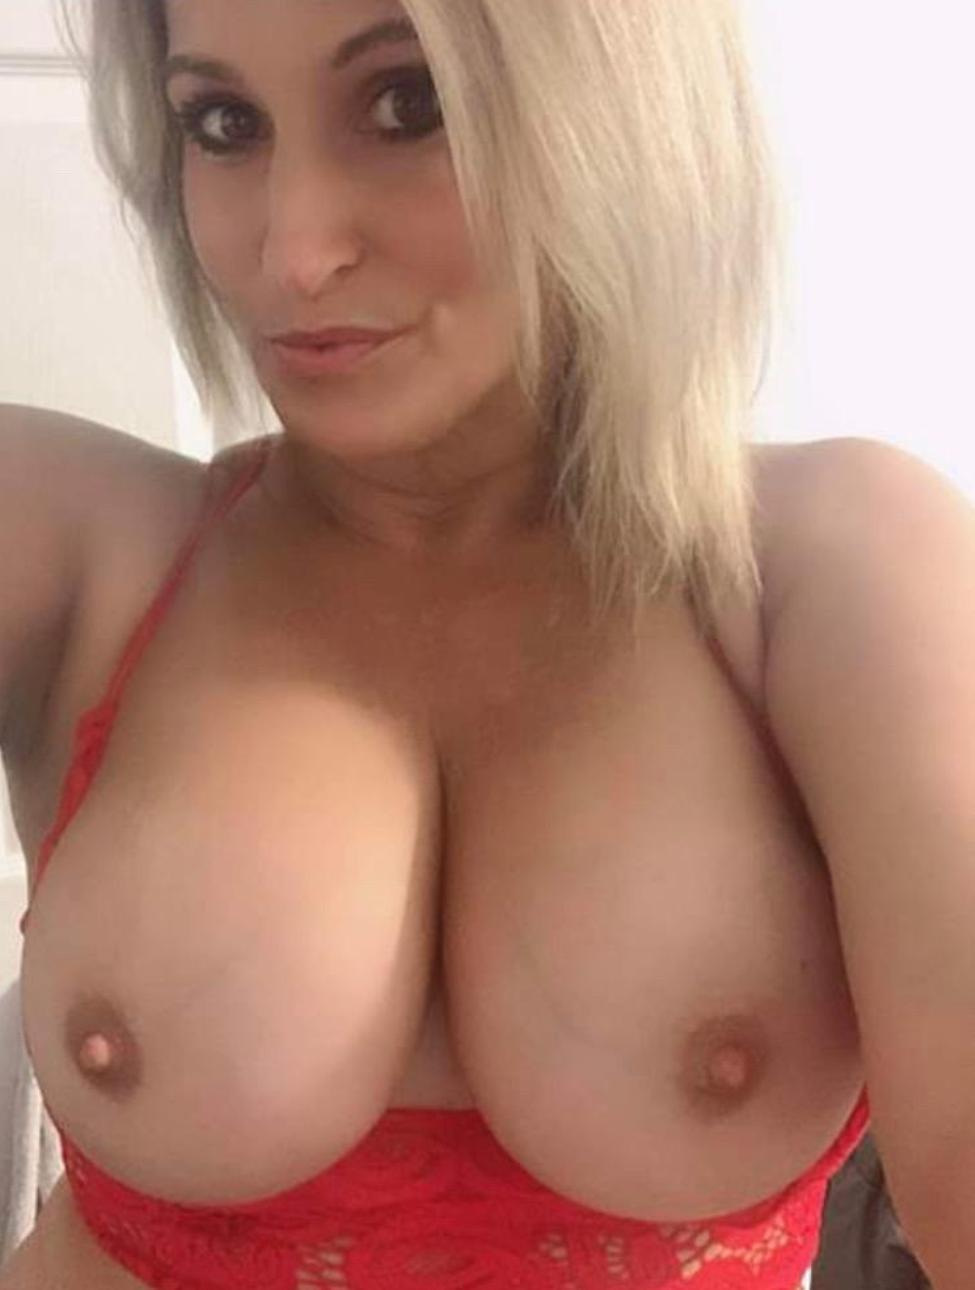 Charming amateur MILF with huge breasts stripping home alone. Perfect blonde female takes topless selfie displaying fantastic big boobs